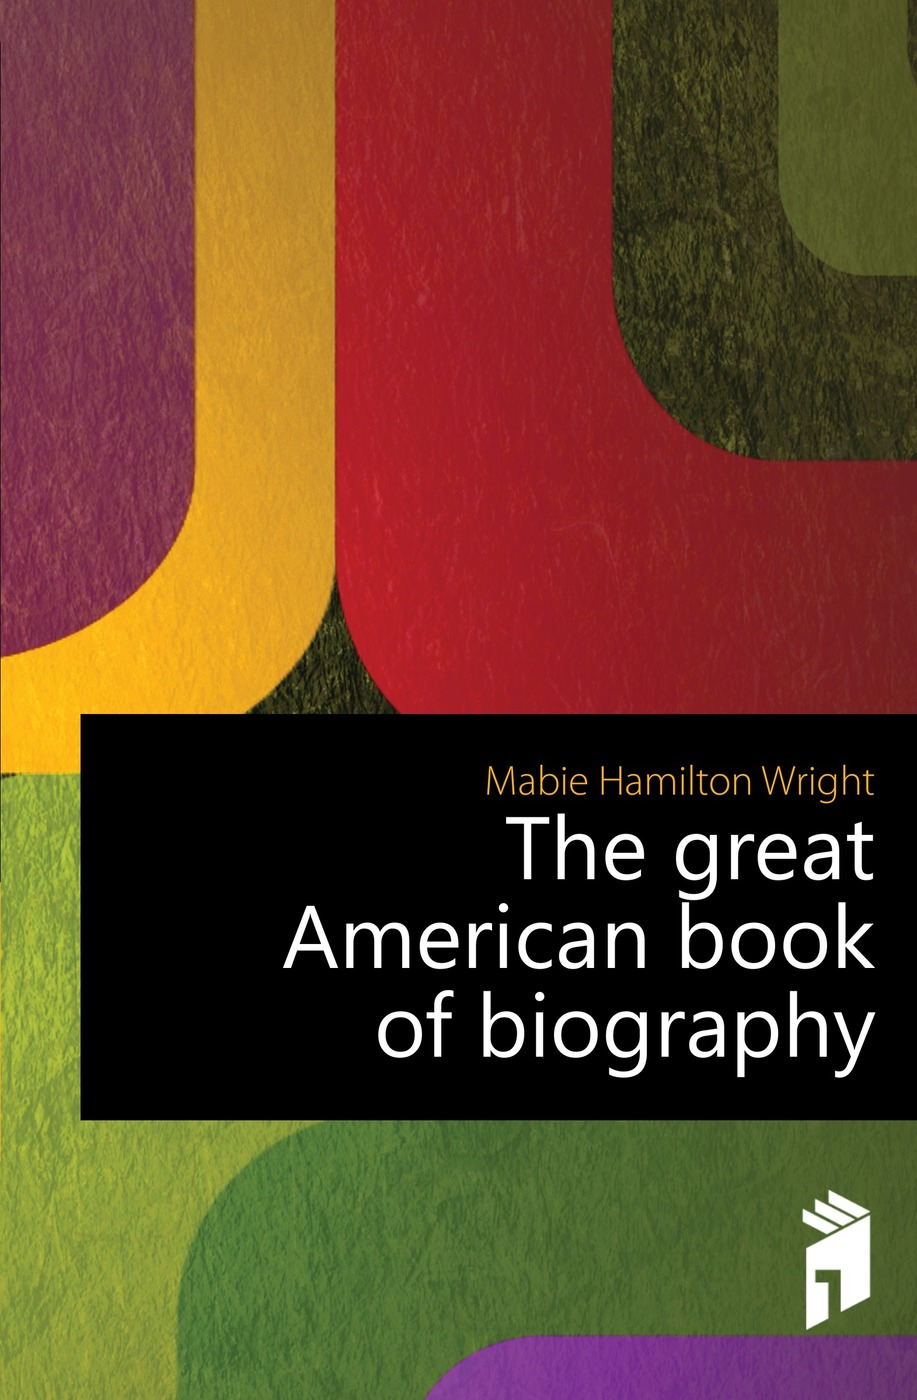 Mabie Hamilton Wright The great American book of biography